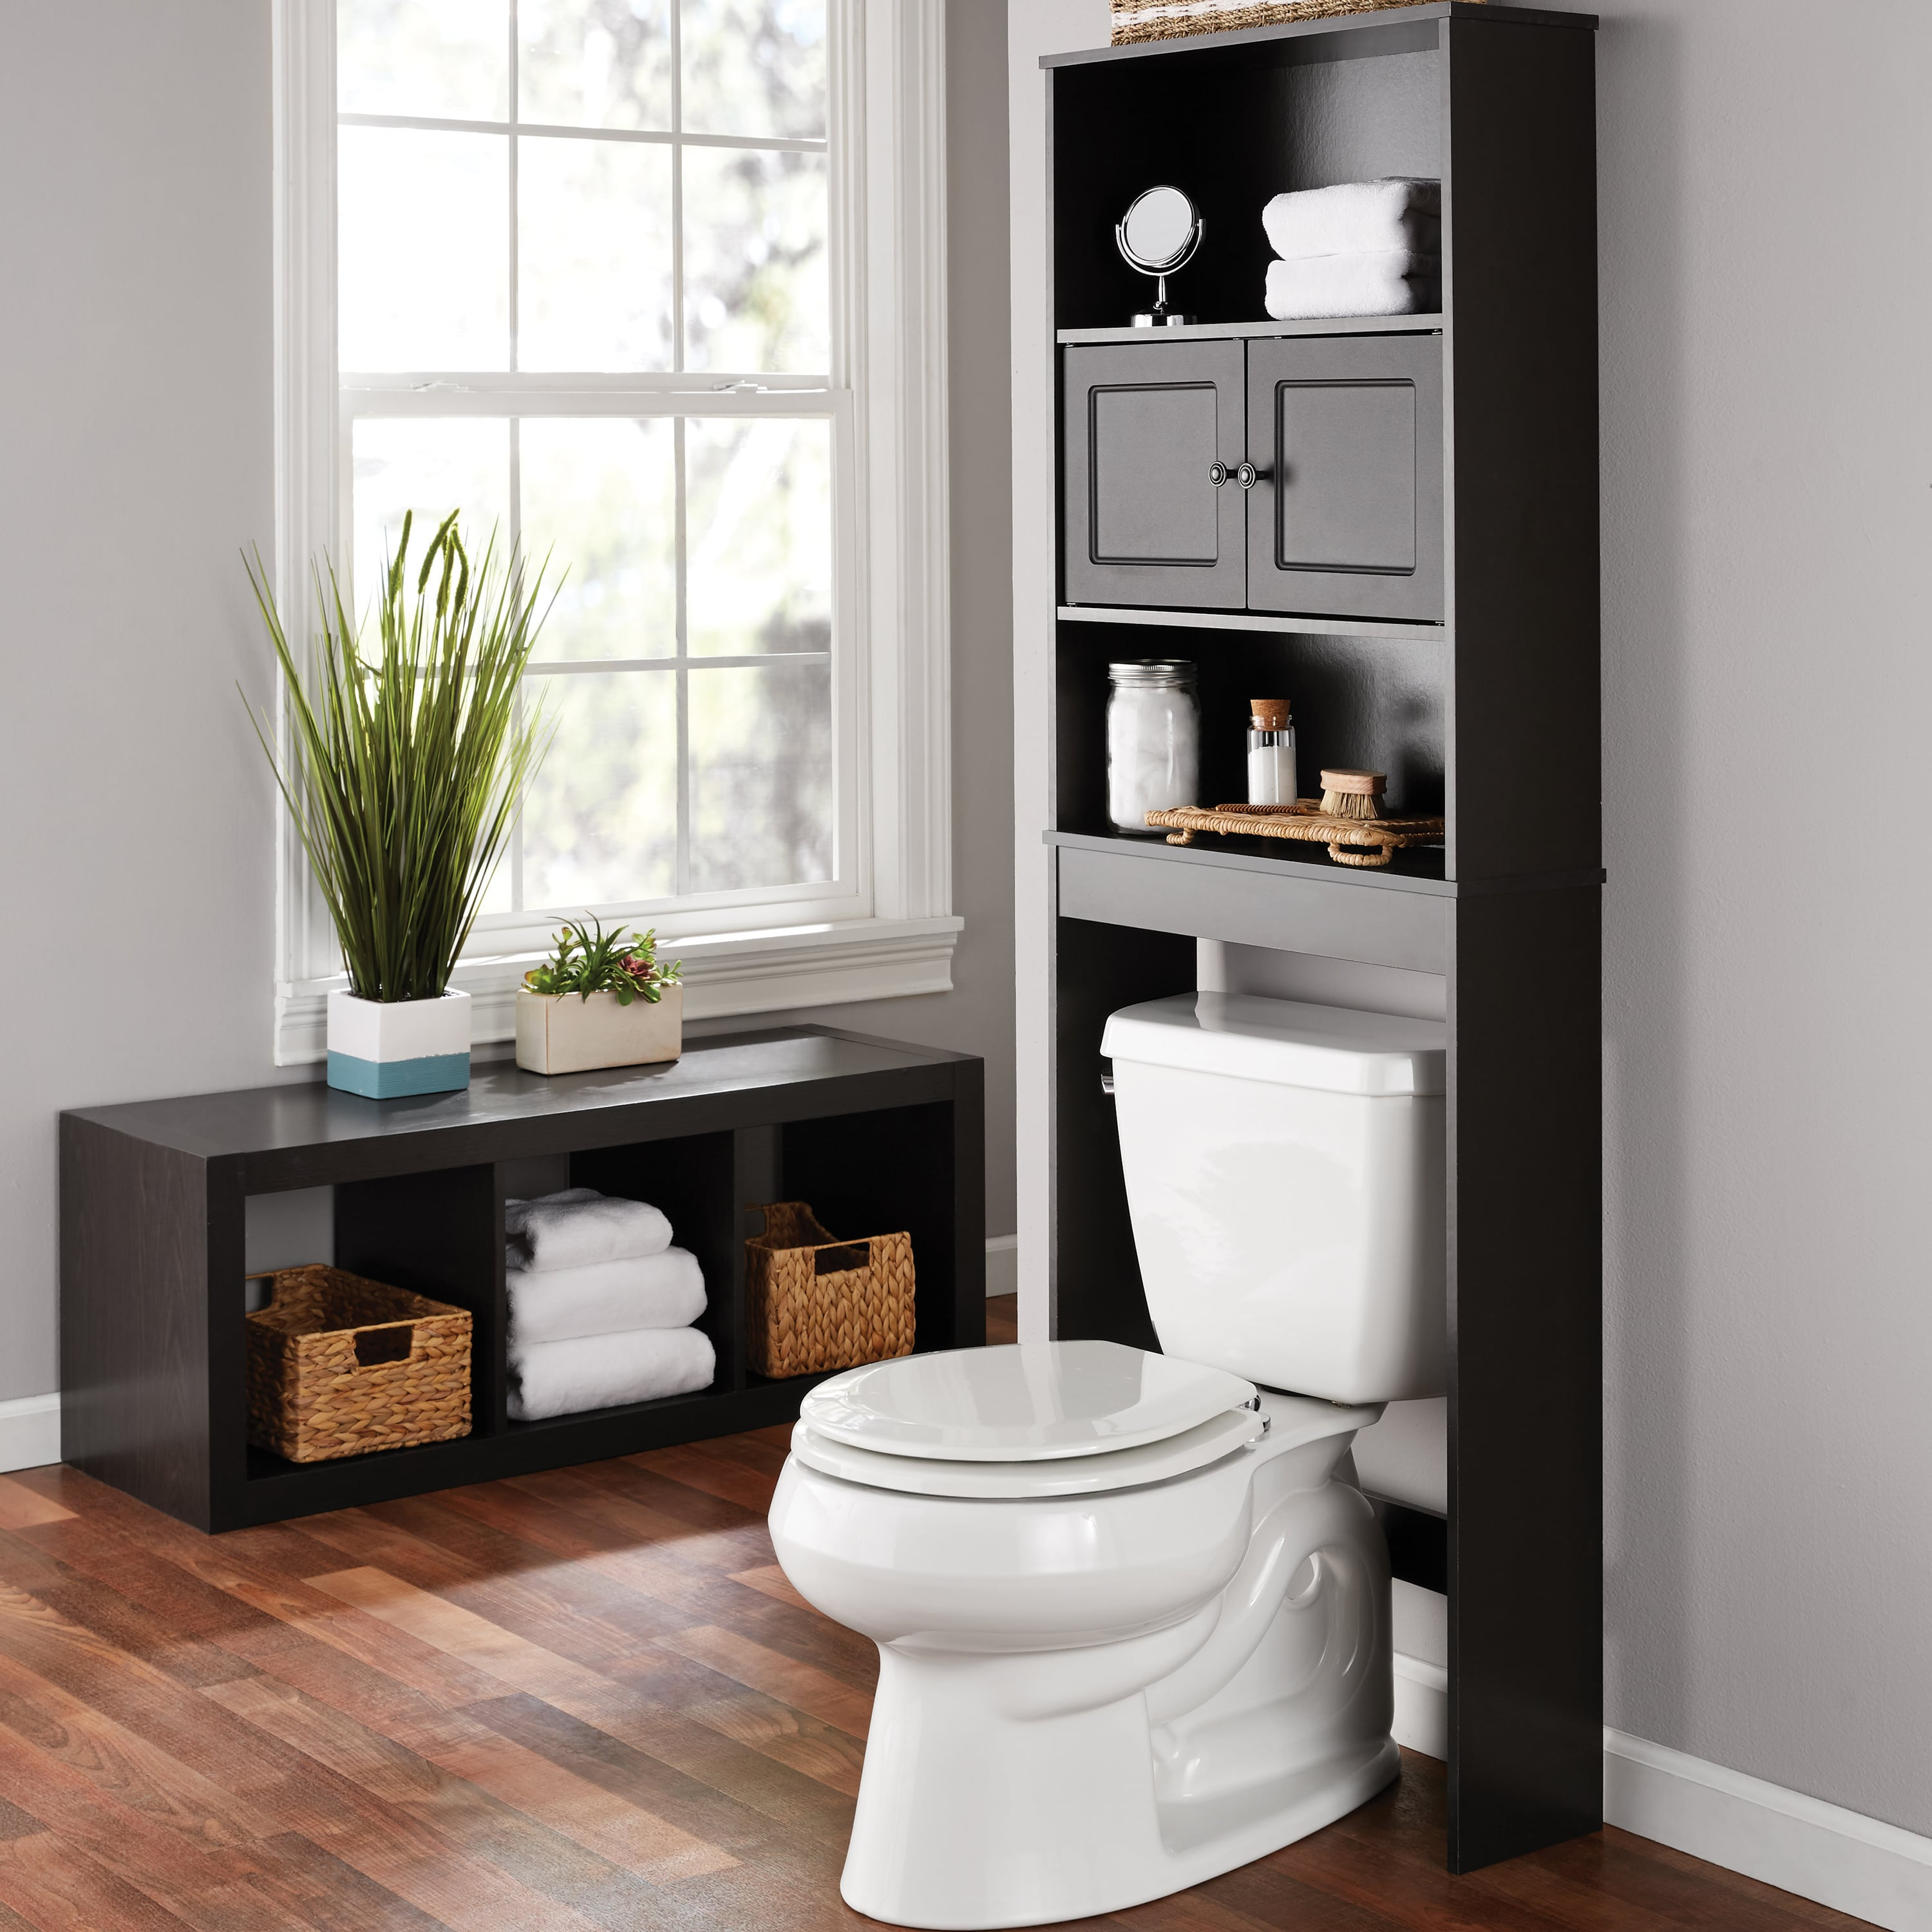 OVER THE TOILET Storage Organizer Bathroom Space Saver Wood Cabinet Cube Shelves